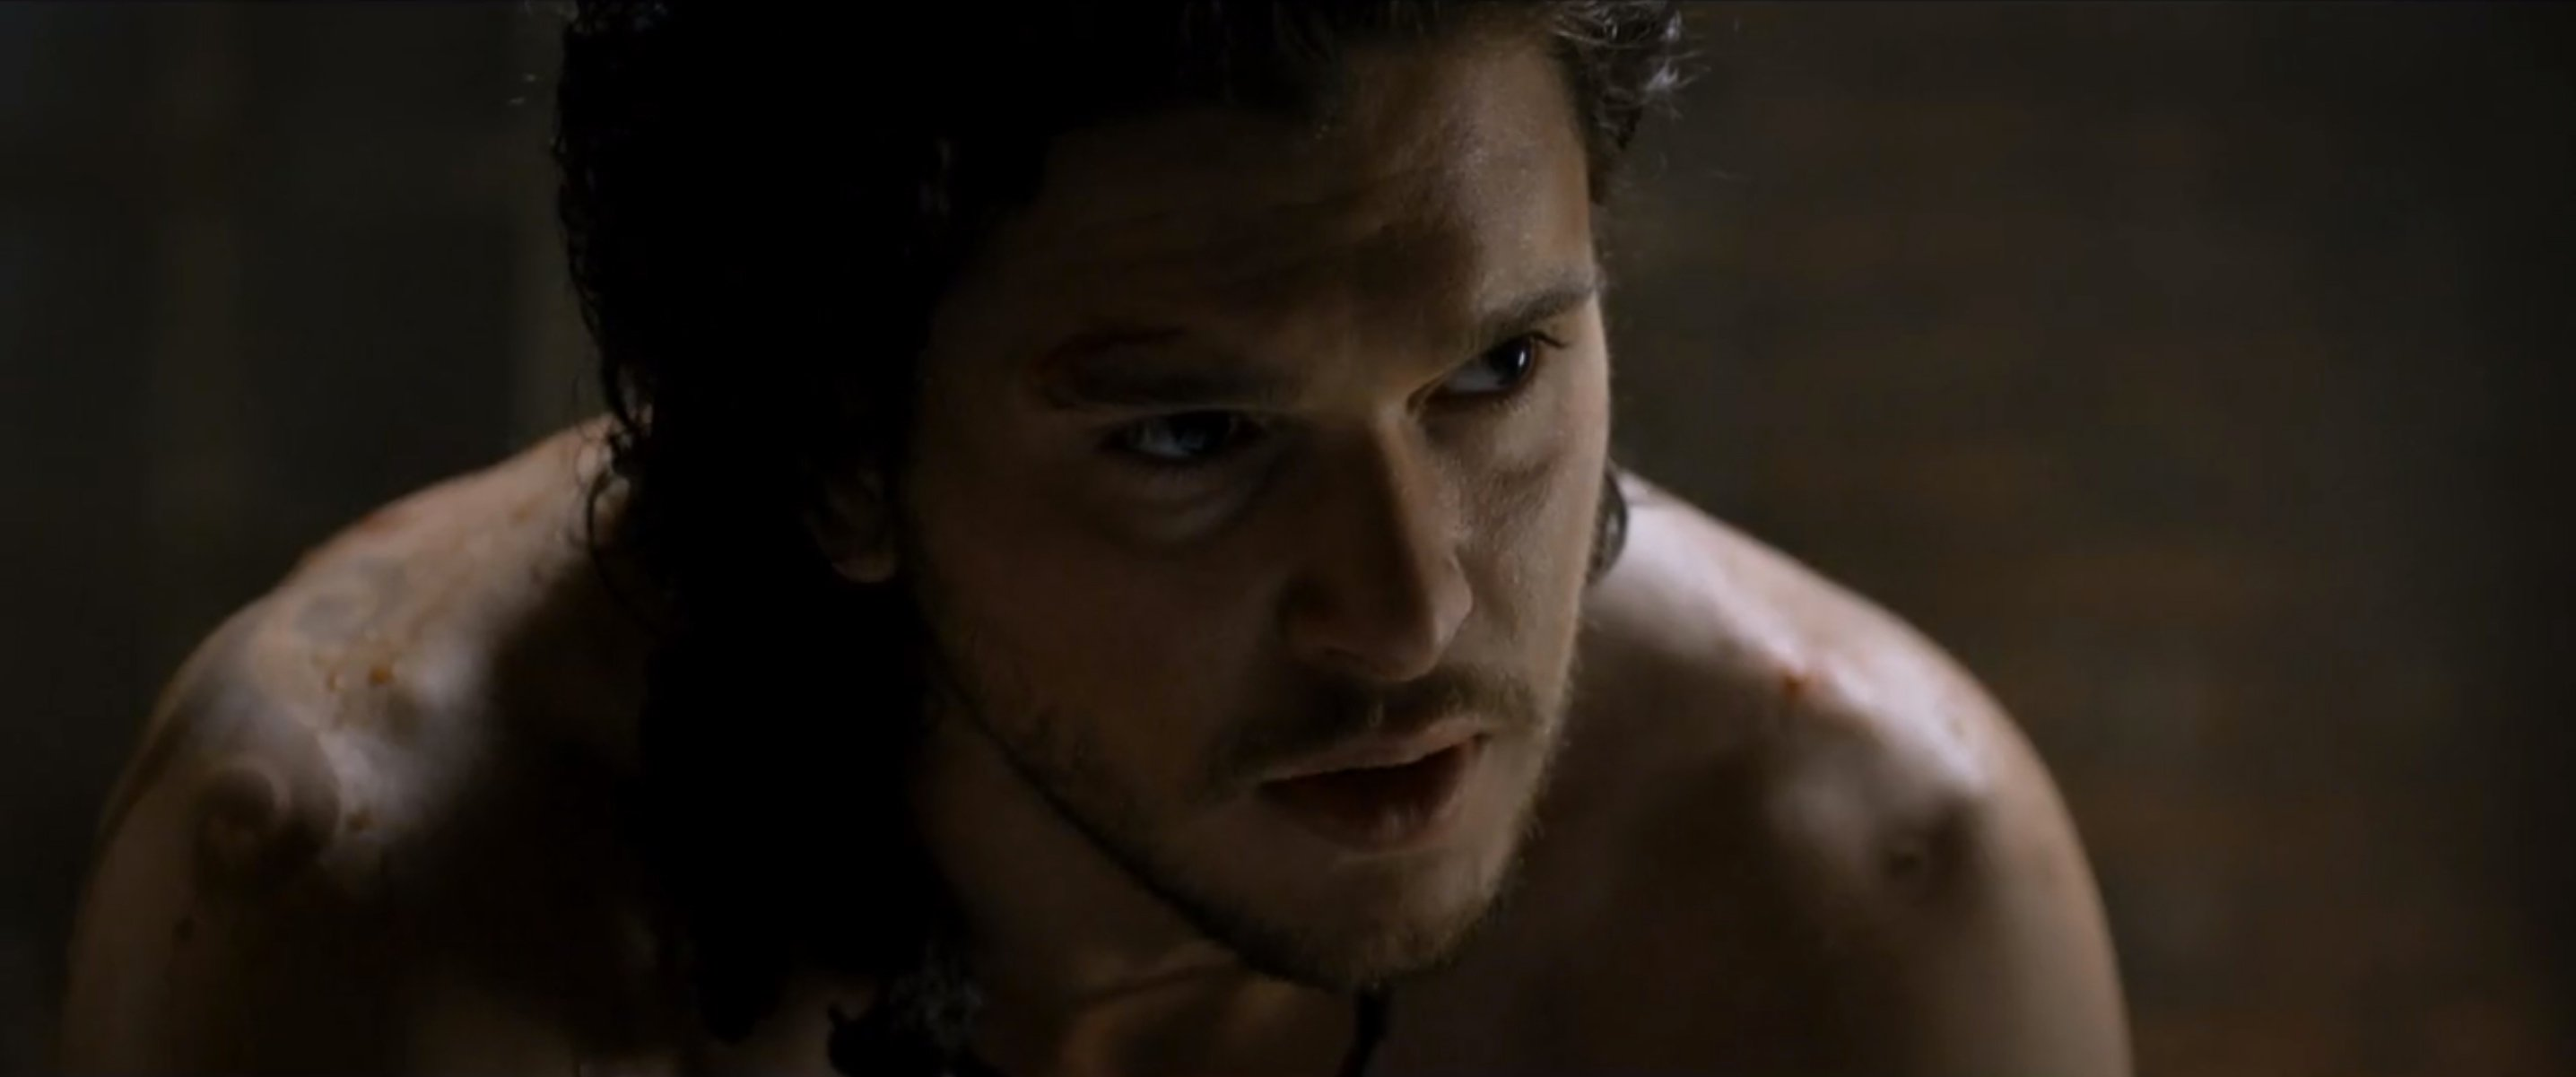 Kit Harington | LeakedMeat 13